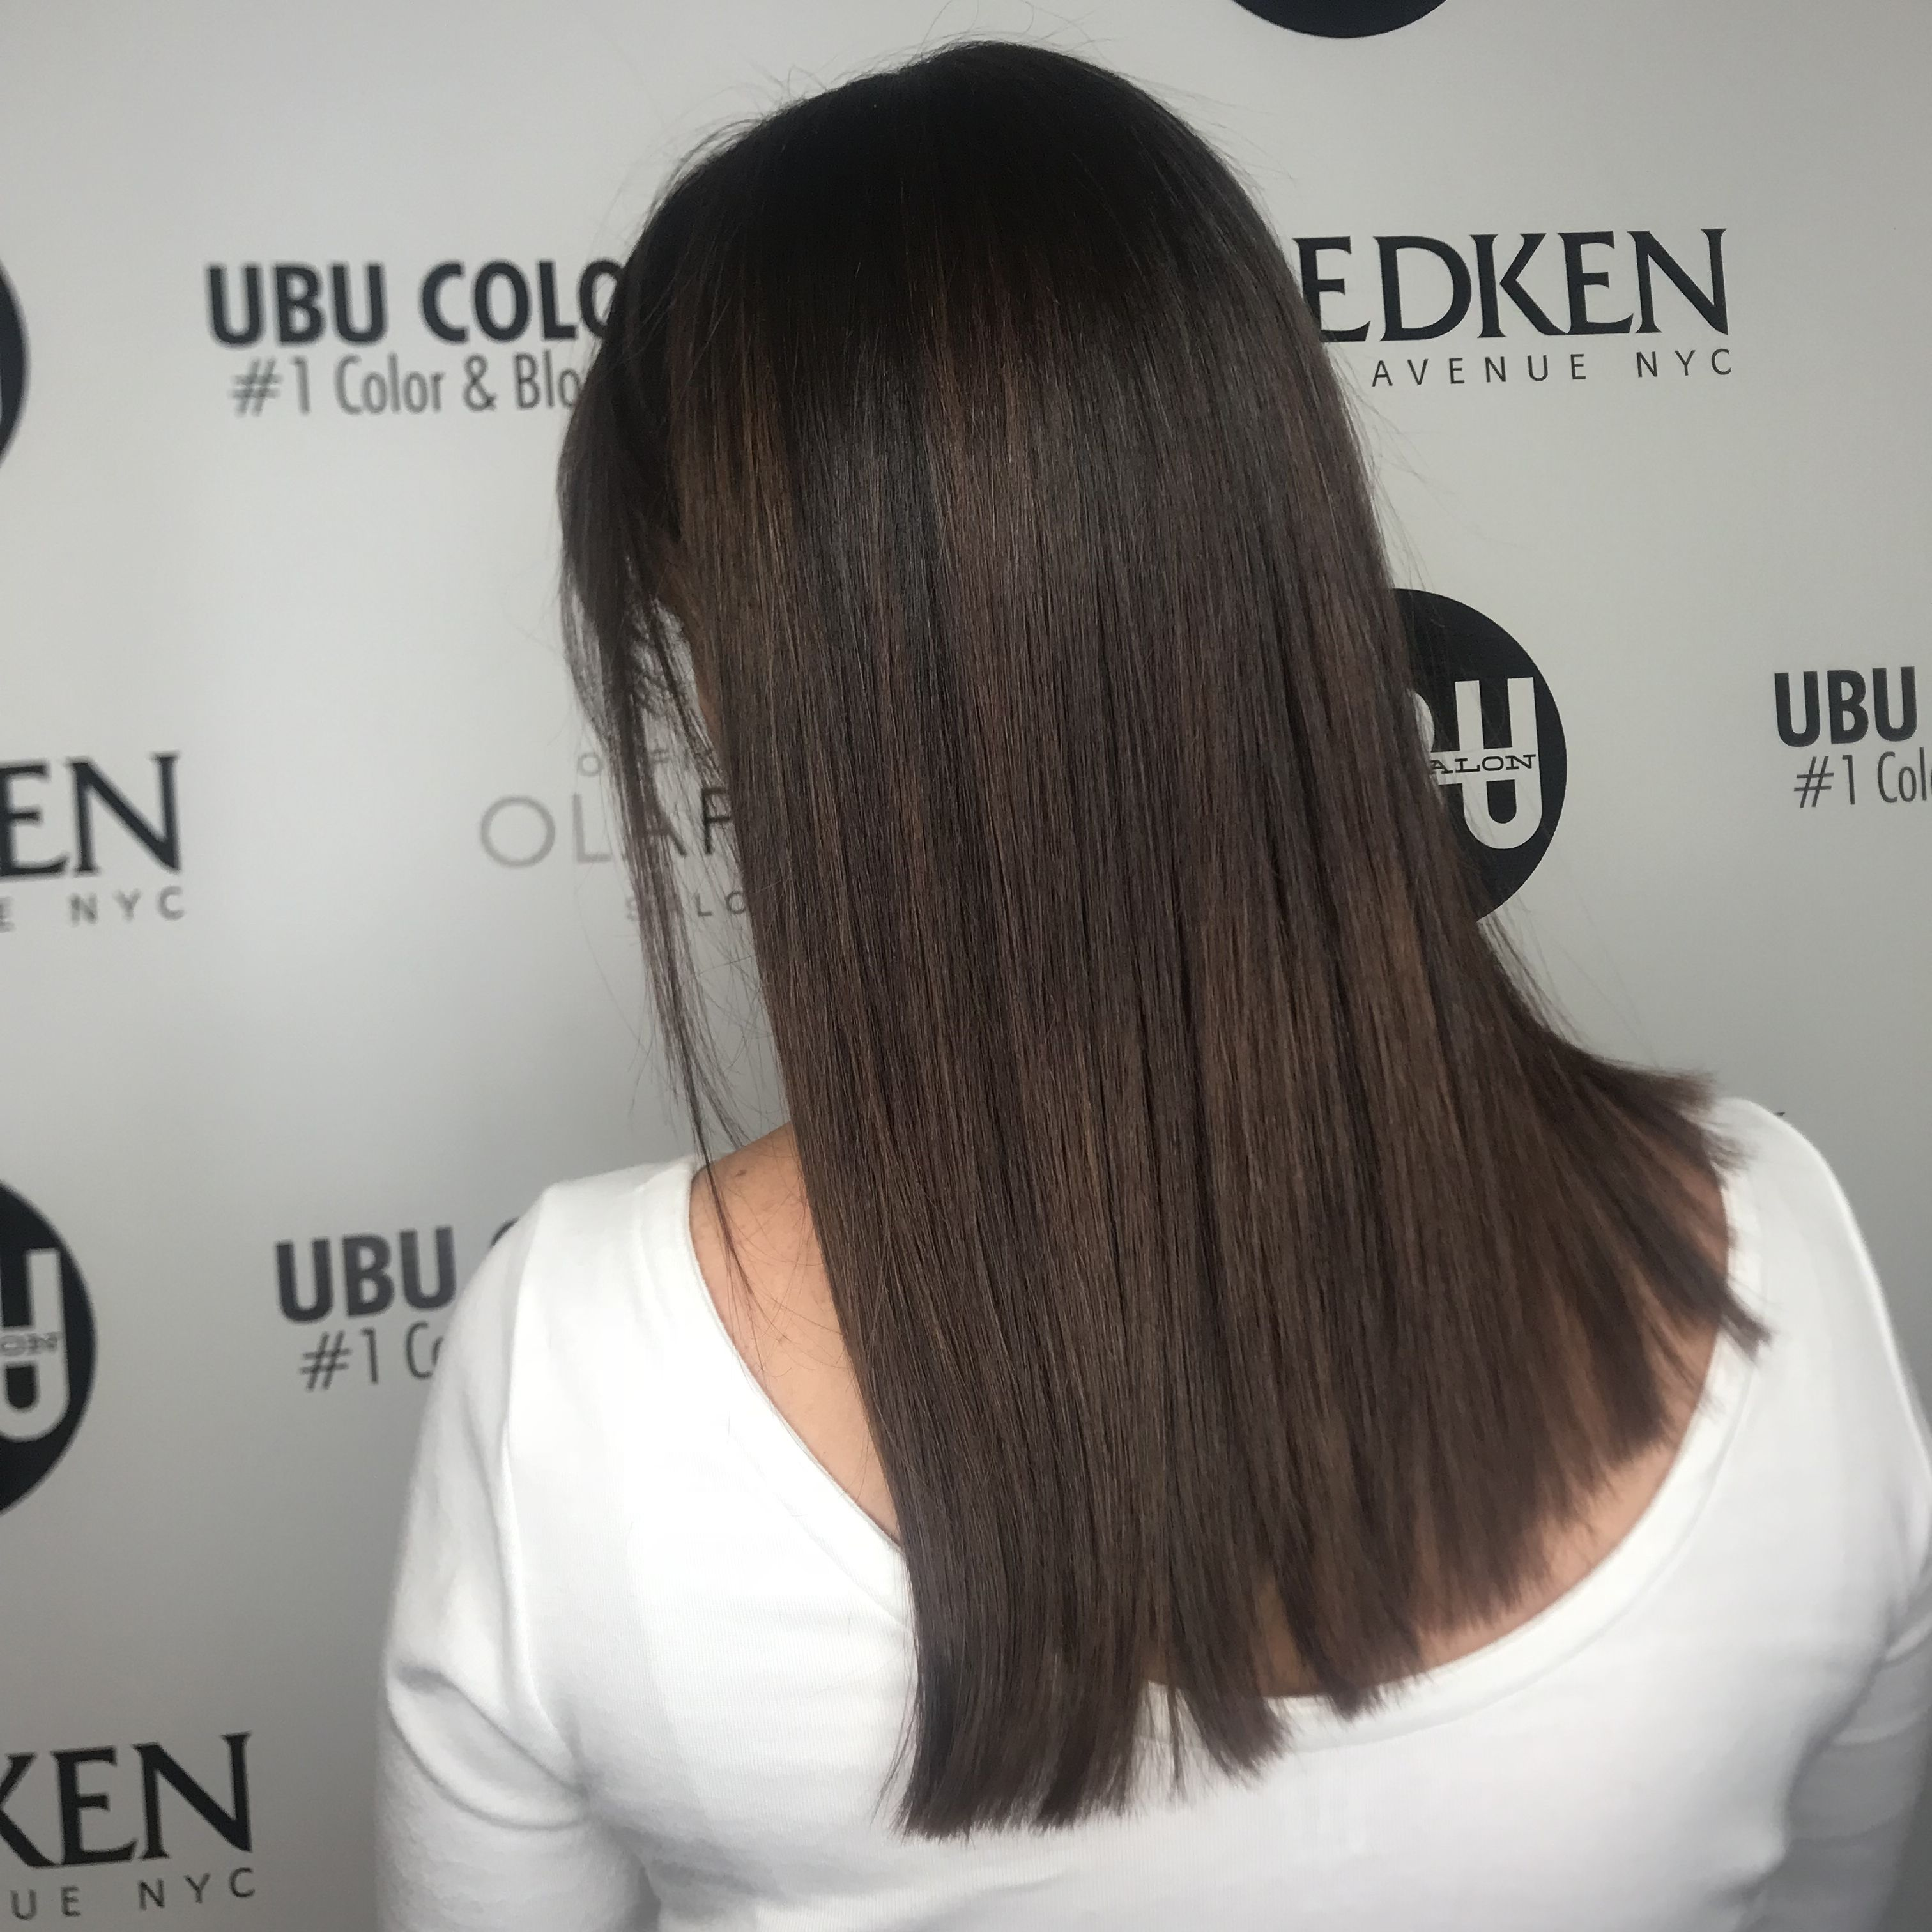 Balayagetampa Tampahair Olaplextampa Kertaintreatmenttampa With Images Long Hair Styles Hair Styles Beauty